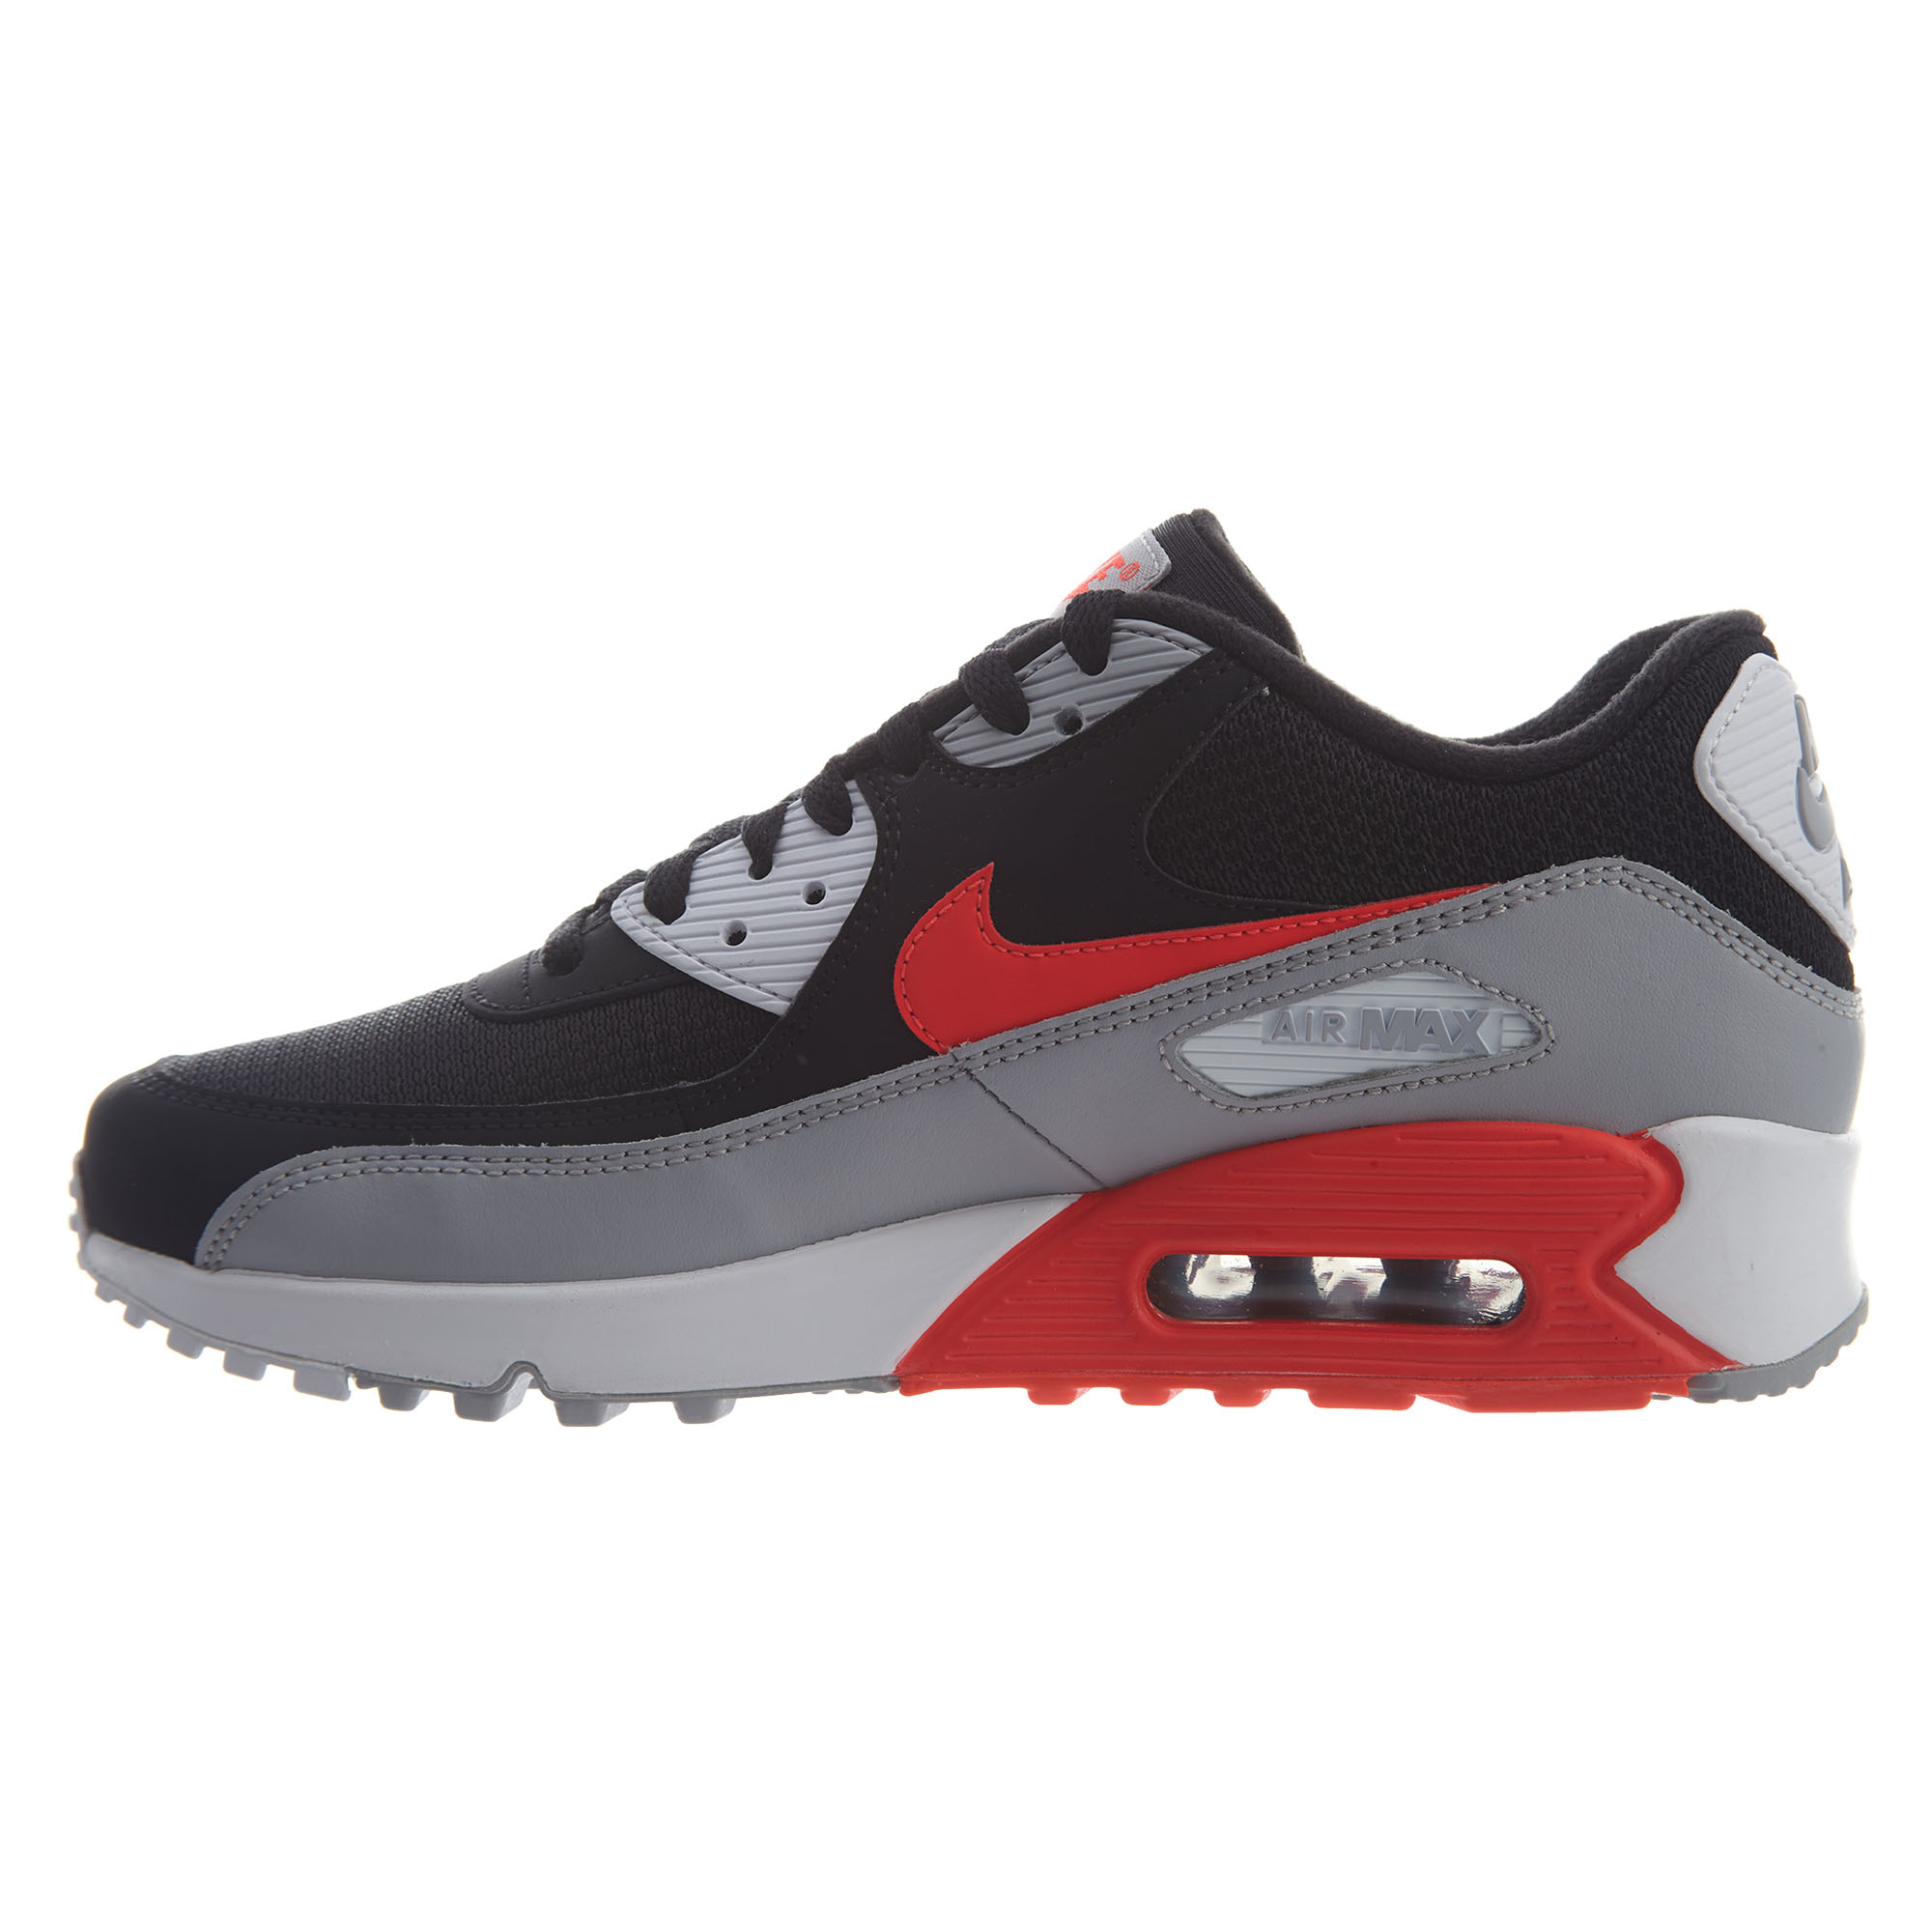 the latest 1169c b0e24 Details about Nike Mens Air Max 90 Essential Running Shoes AJ1285-012